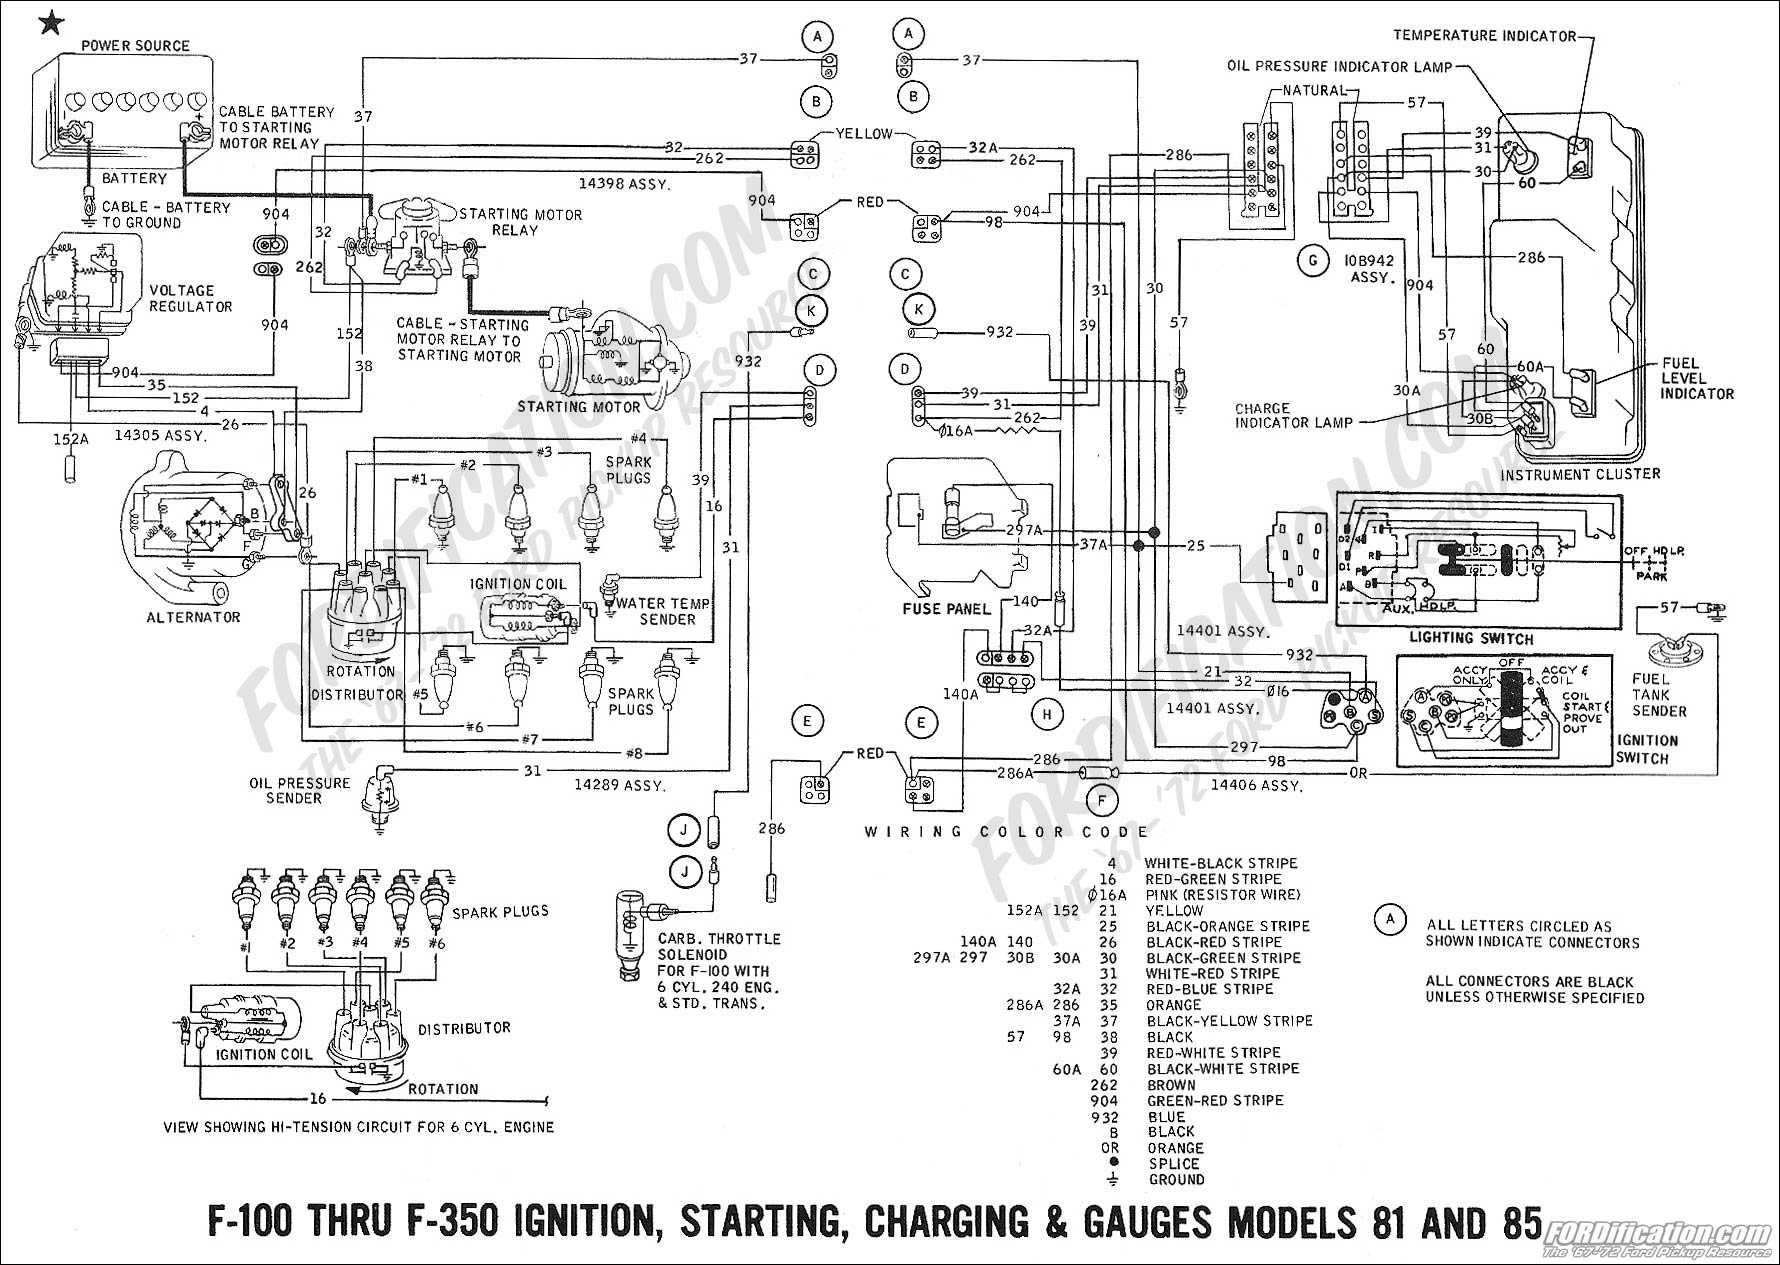 wiring diagram for 1986 ford f250 the wiring diagram 1986 ford f350 wiring diagram diagram wiring diagram